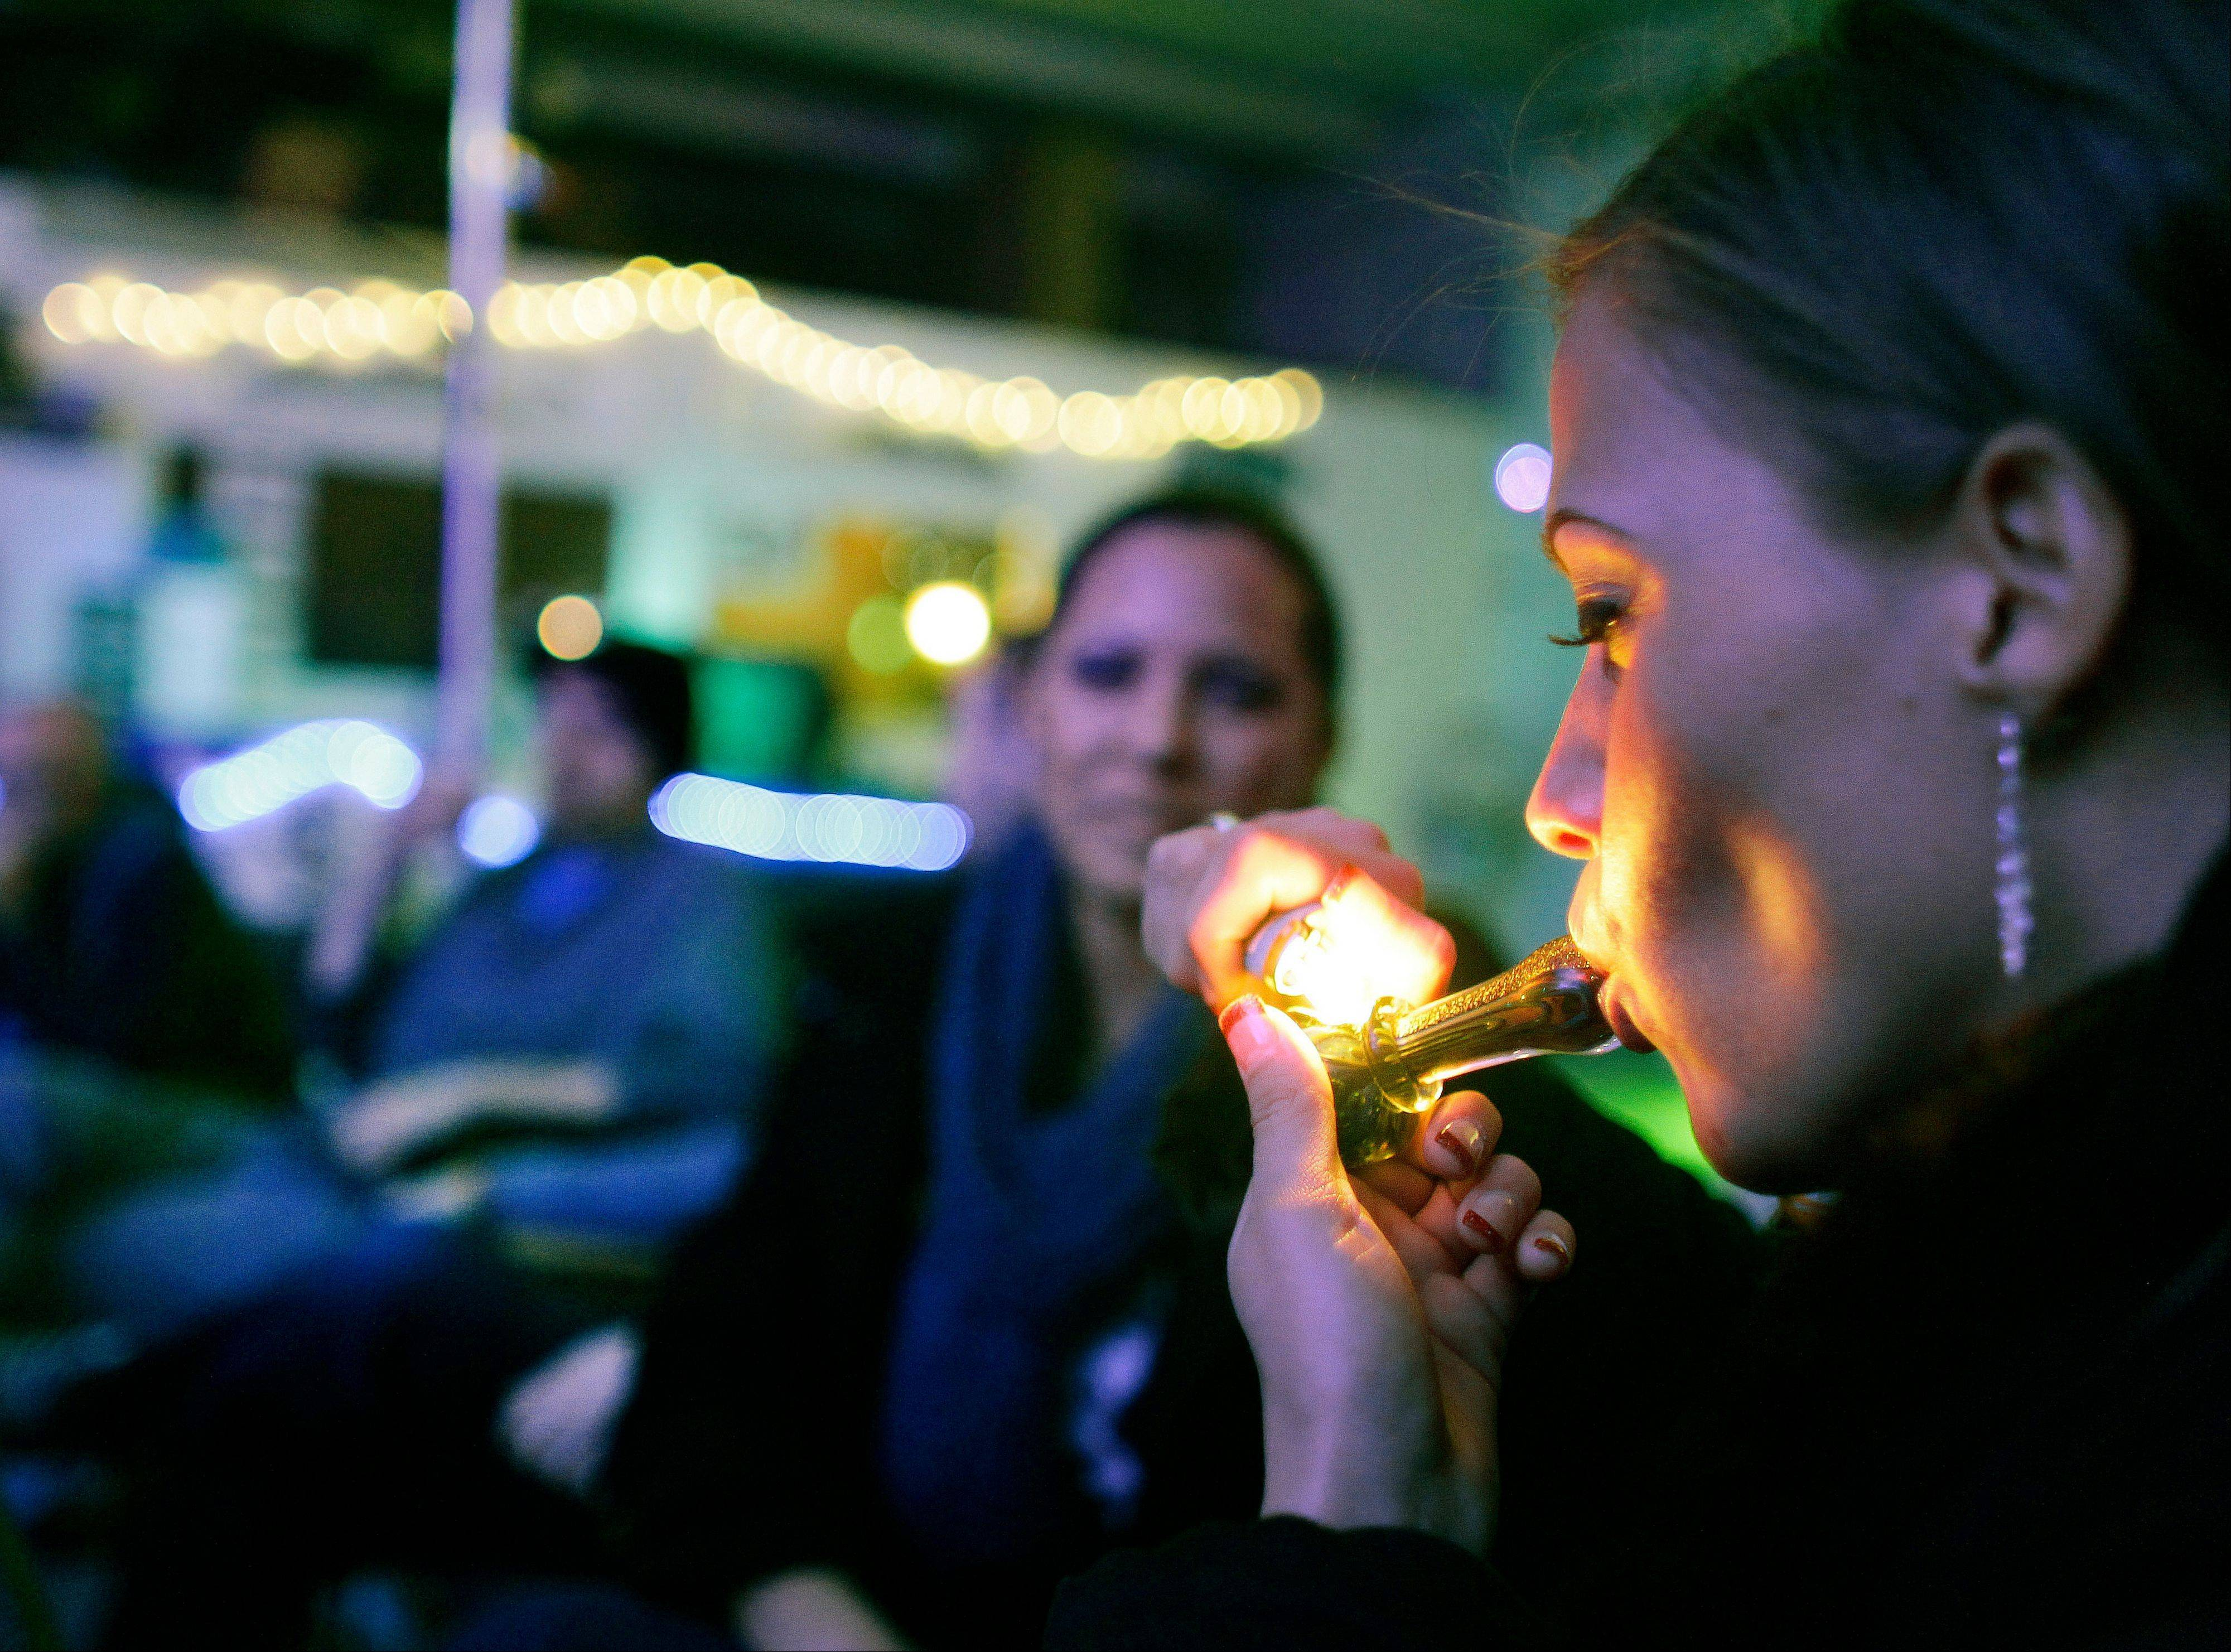 In this in Dec. 31, 2012, file photo, a woman smokes marijuana on the official opening night of Club 64, a marijuana-specific social club, where a New Year's Eve party was held, in Denver.